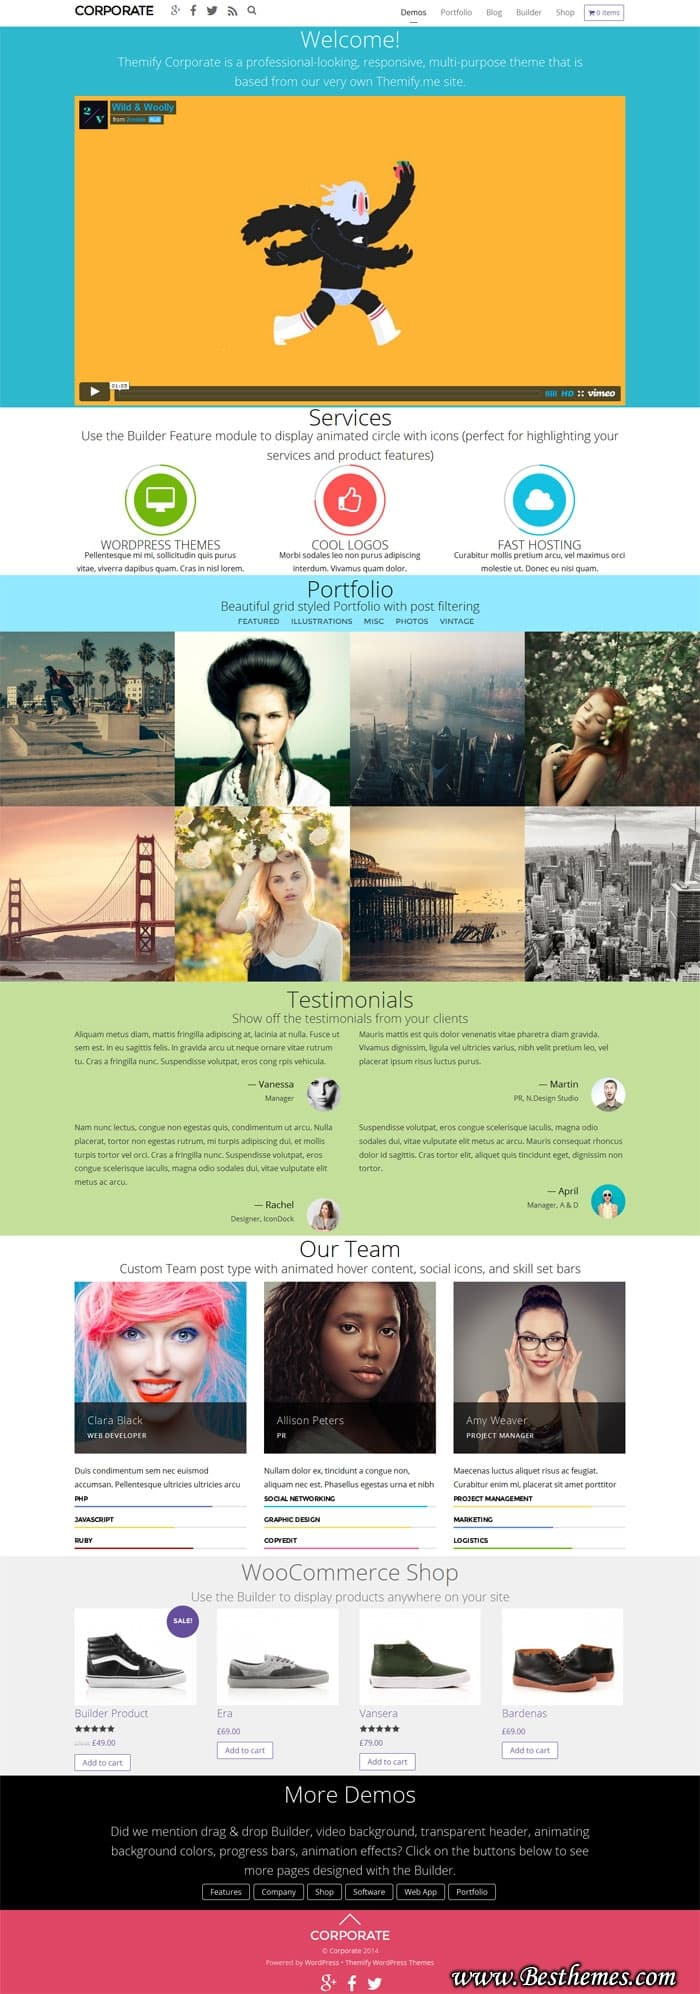 Corporate WordPress Theme - Themify